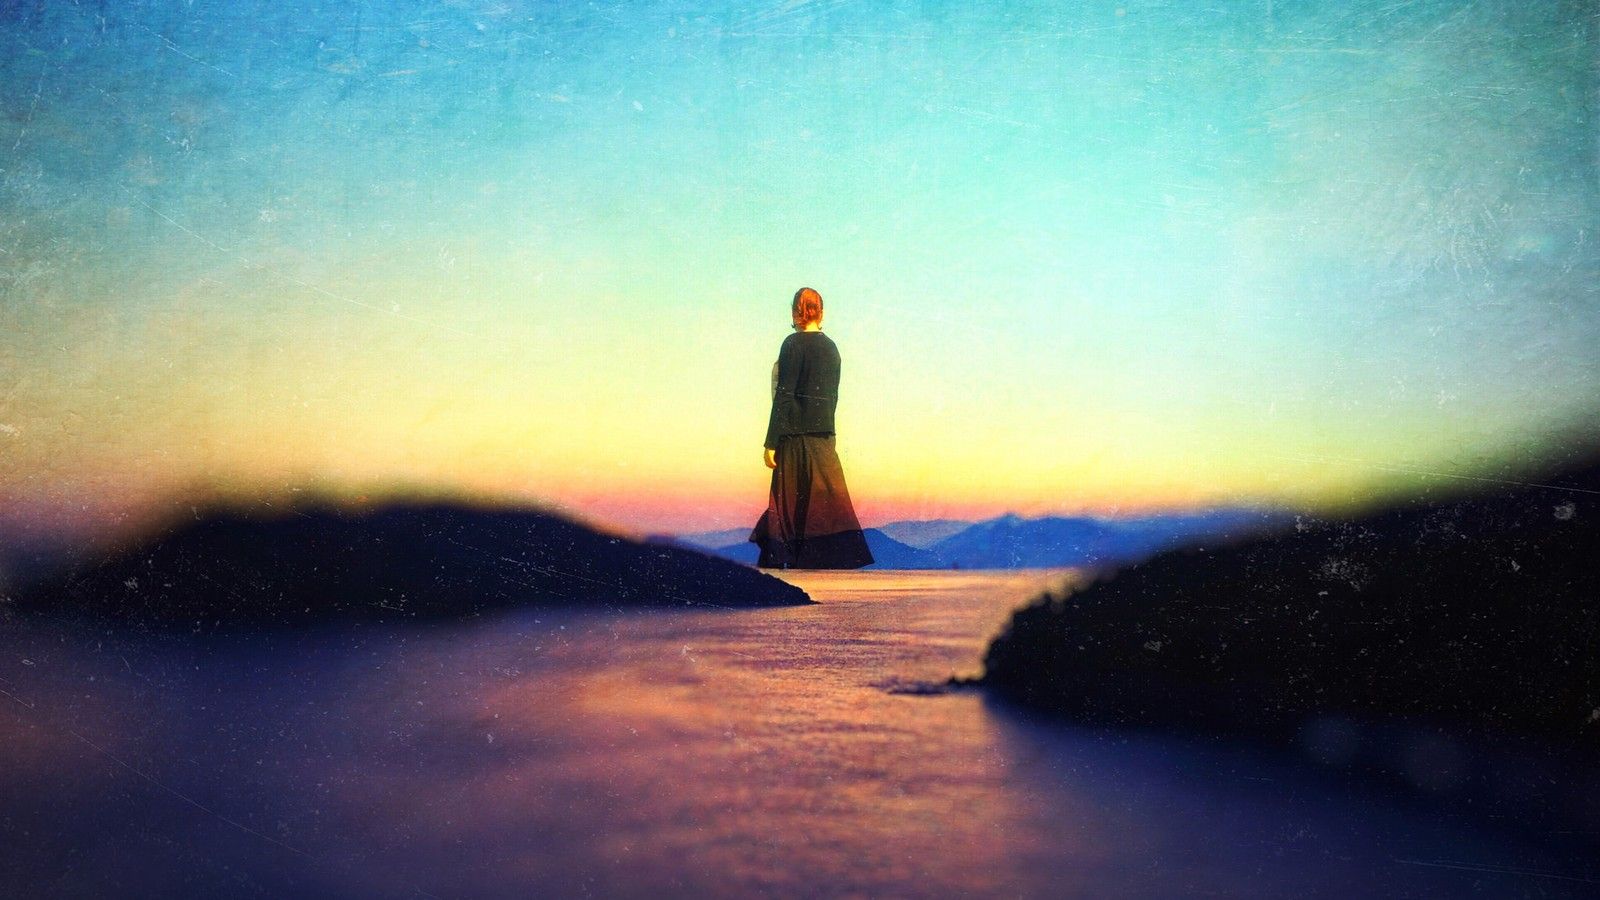 The Aspirational Science of Predictive Dreaming